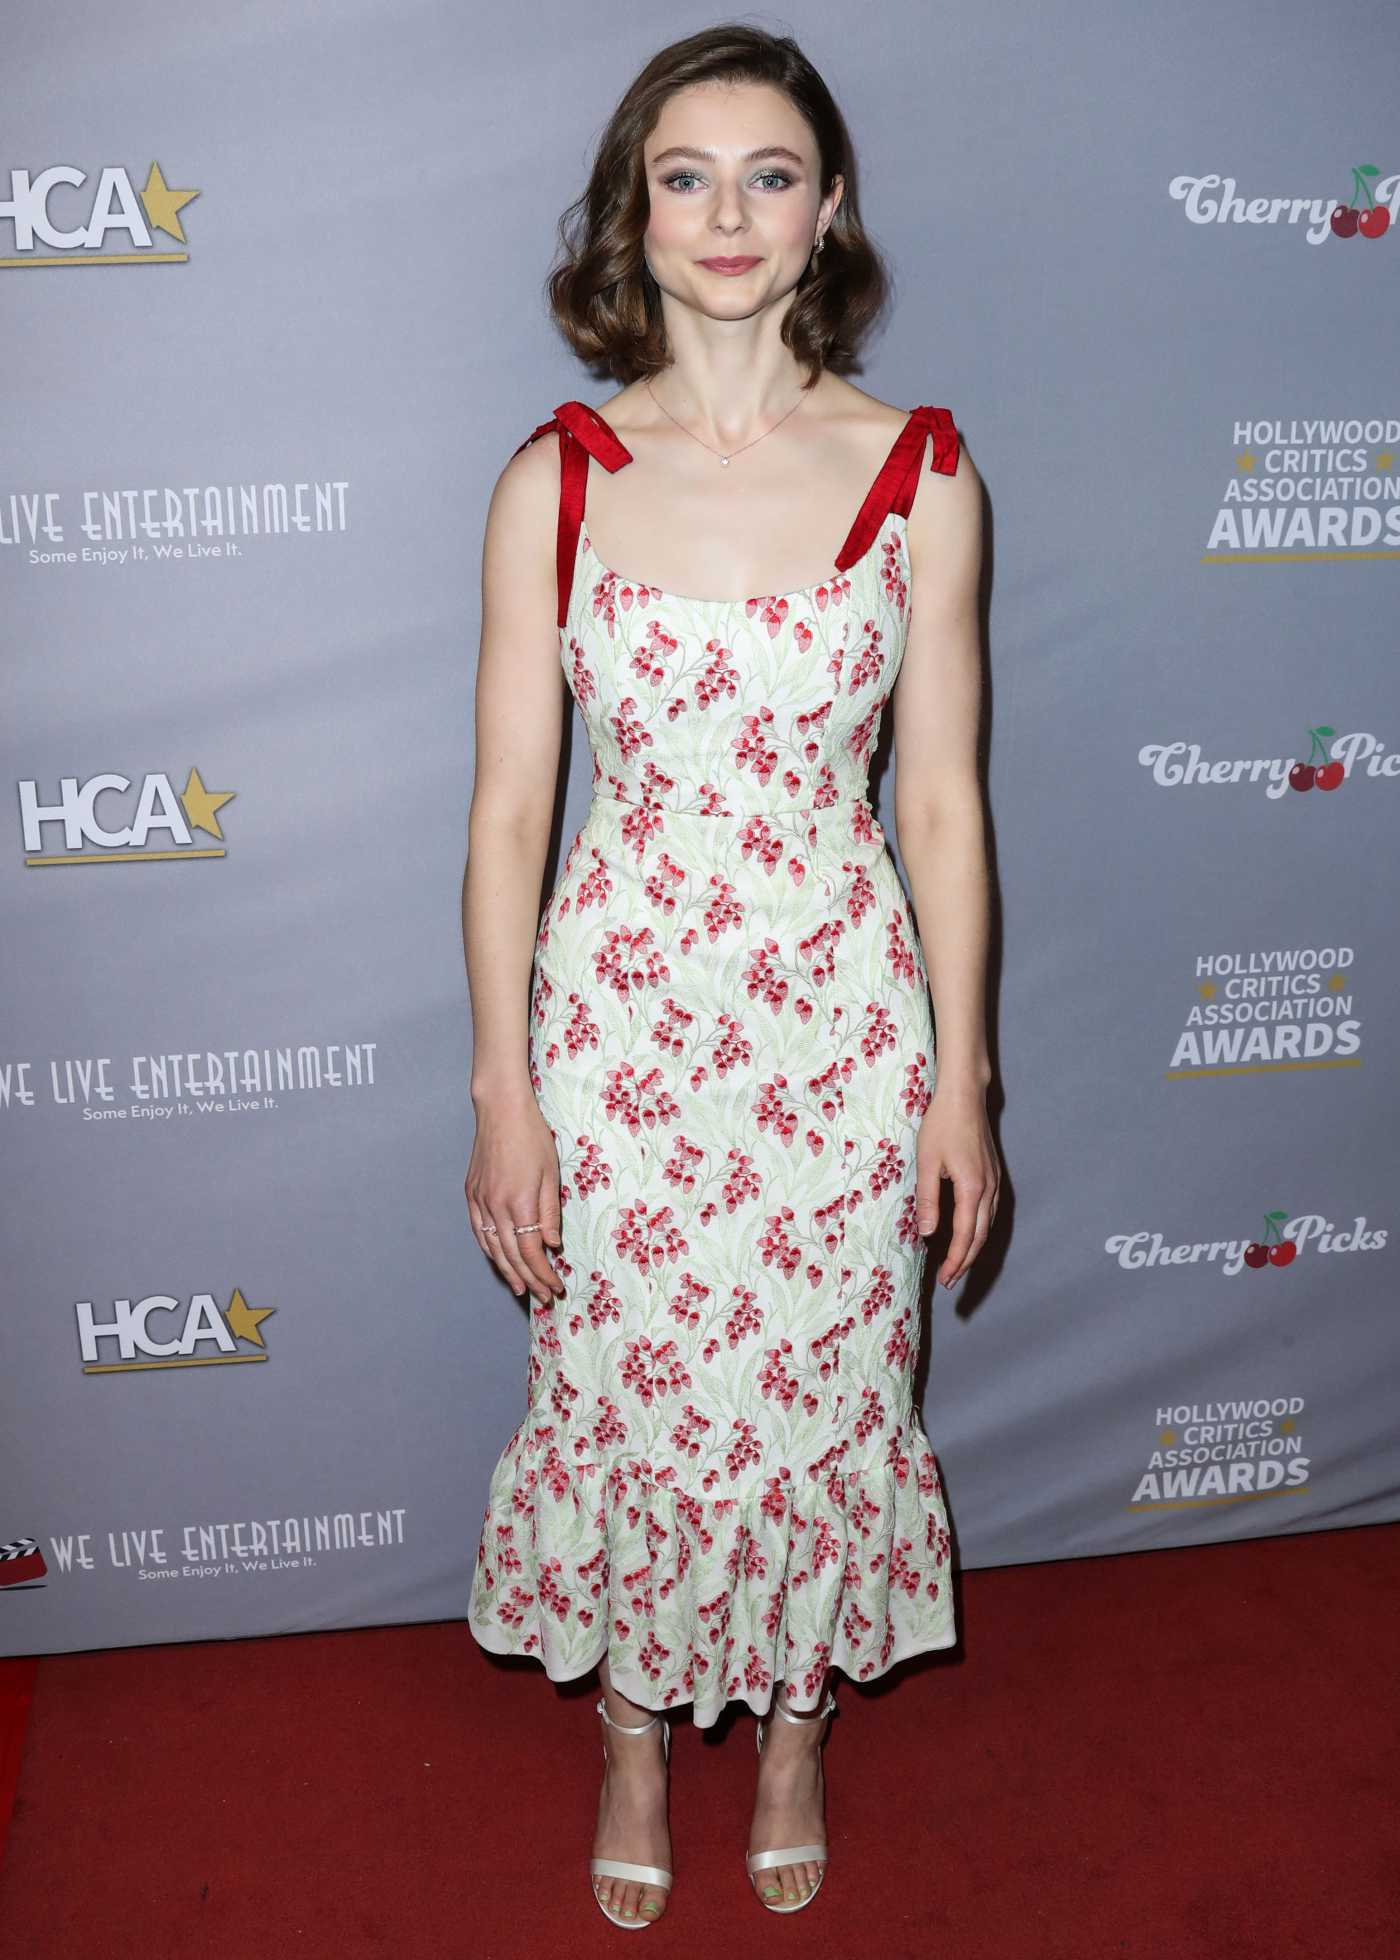 Thomasin McKenzie Attends the 3rd Annual Hollywood Critics' Awards at the Taglyan Cultural Complex in Hollywood 01/10/2020